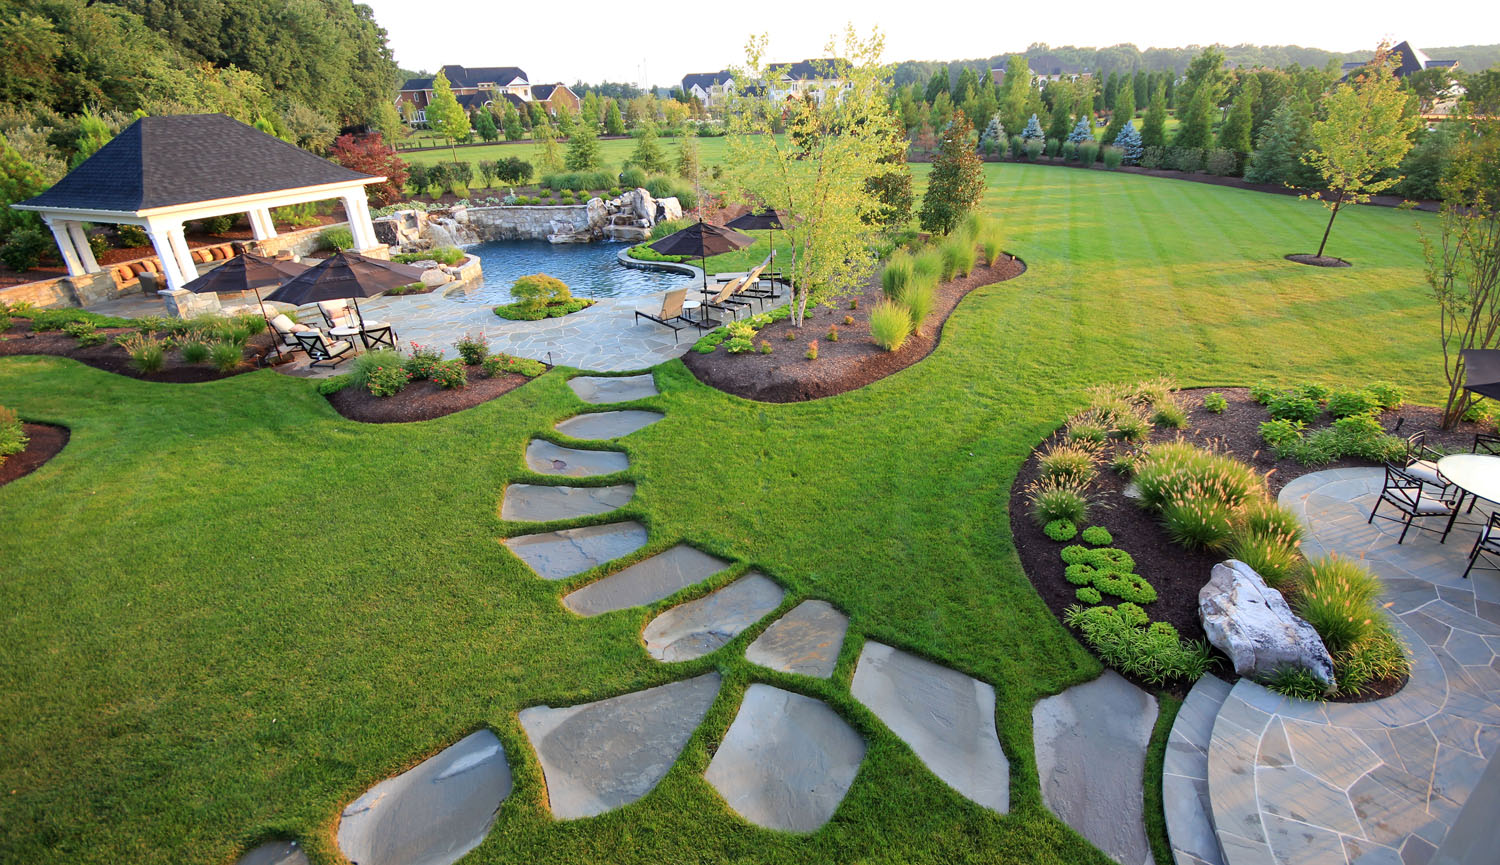 landscape design with curvaceous lawn